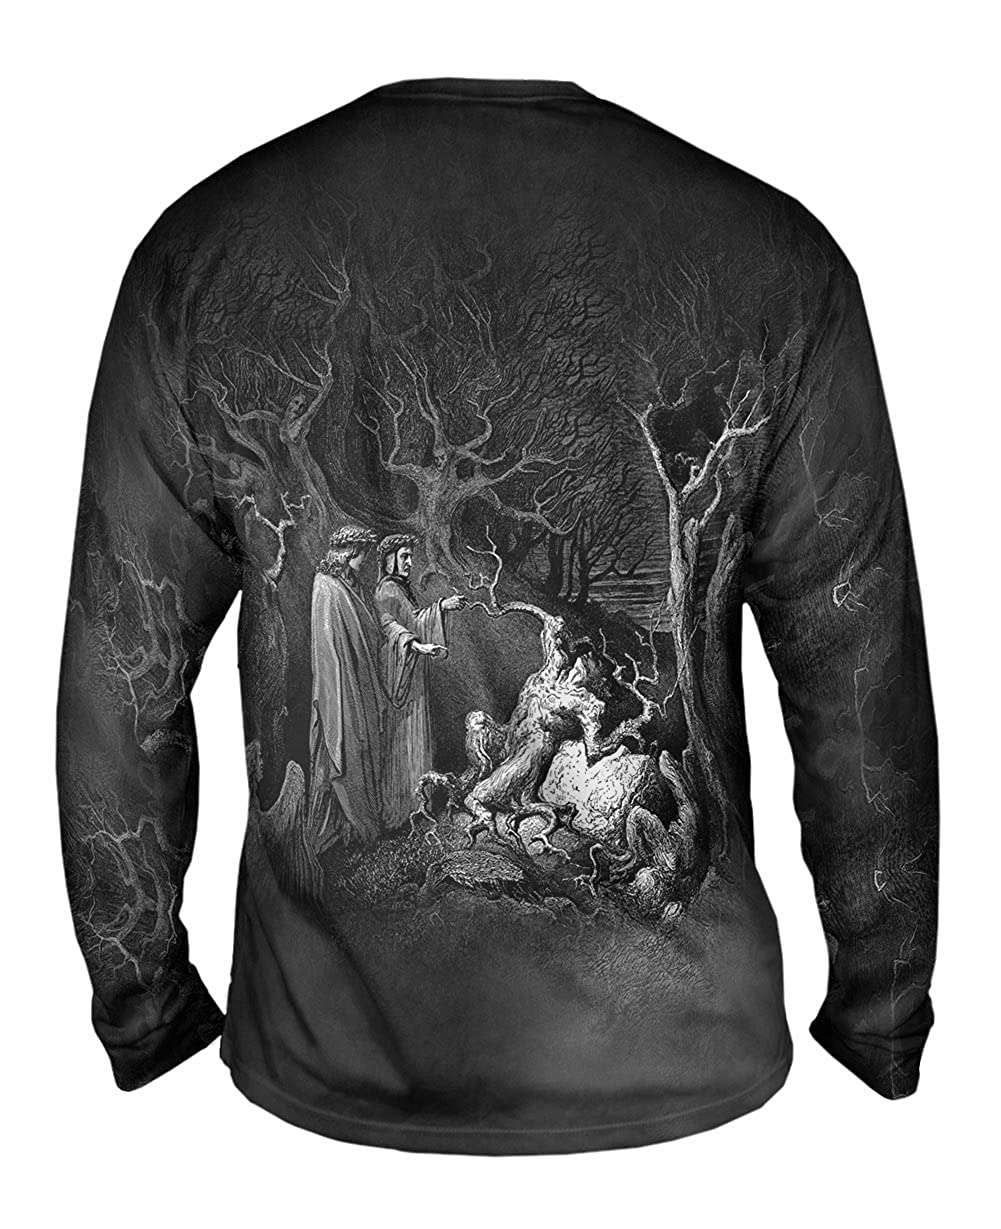 The Inferno Canto 13 -TShirt- Mens Long Sleeve 1857 Yizzam- Gustave Dore